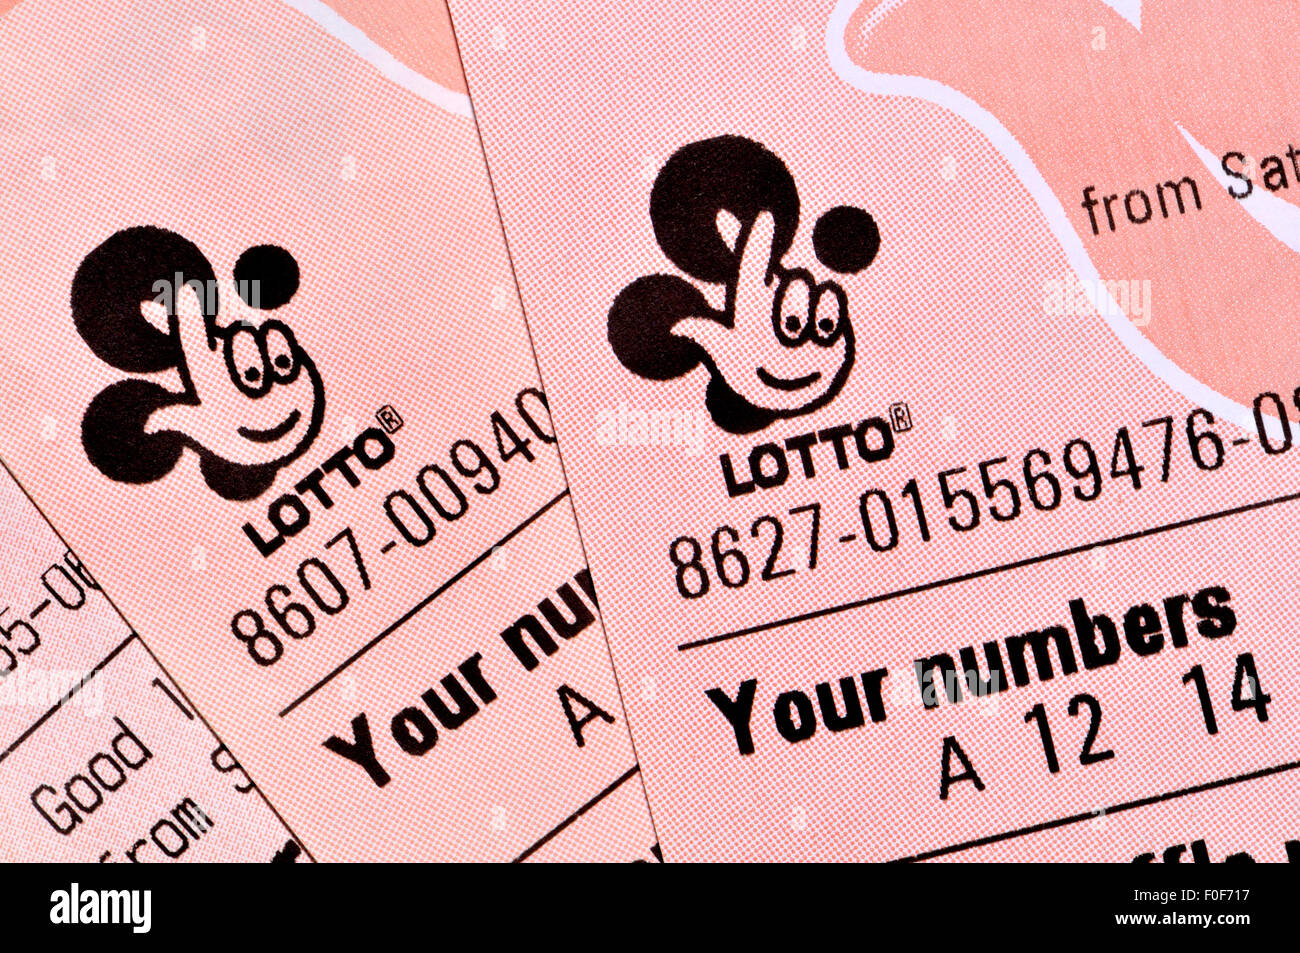 British Lotto national lottery tickets - new design from August 2015 - Stock Image